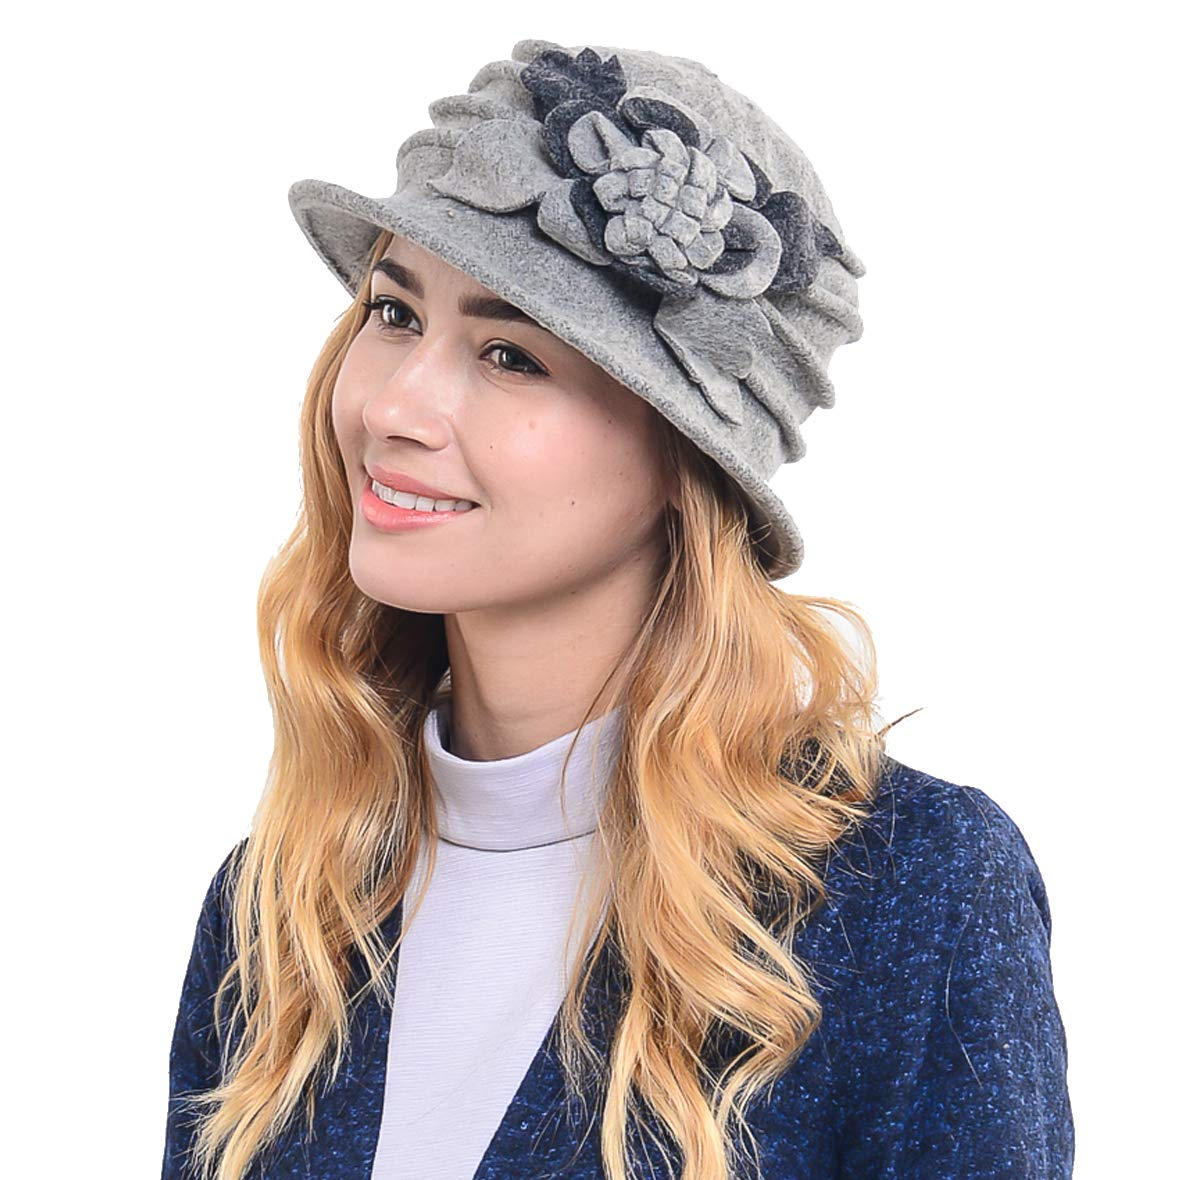 Women's French Beret - 100% Wool Cloche Hat - Beret Beanie for Winter C020 (Grey)